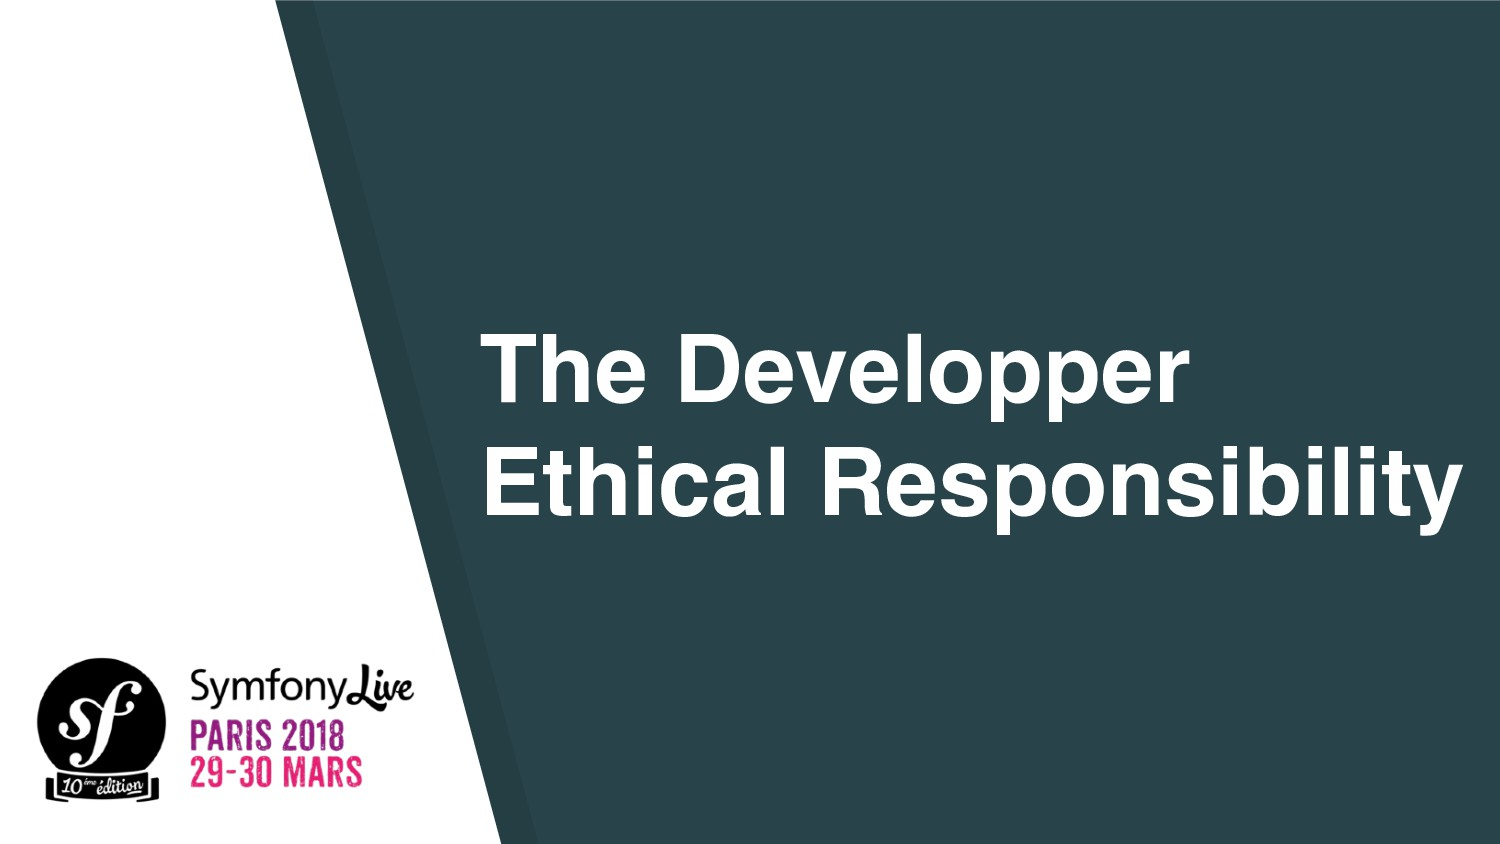 The Developper Ethical Responsibility